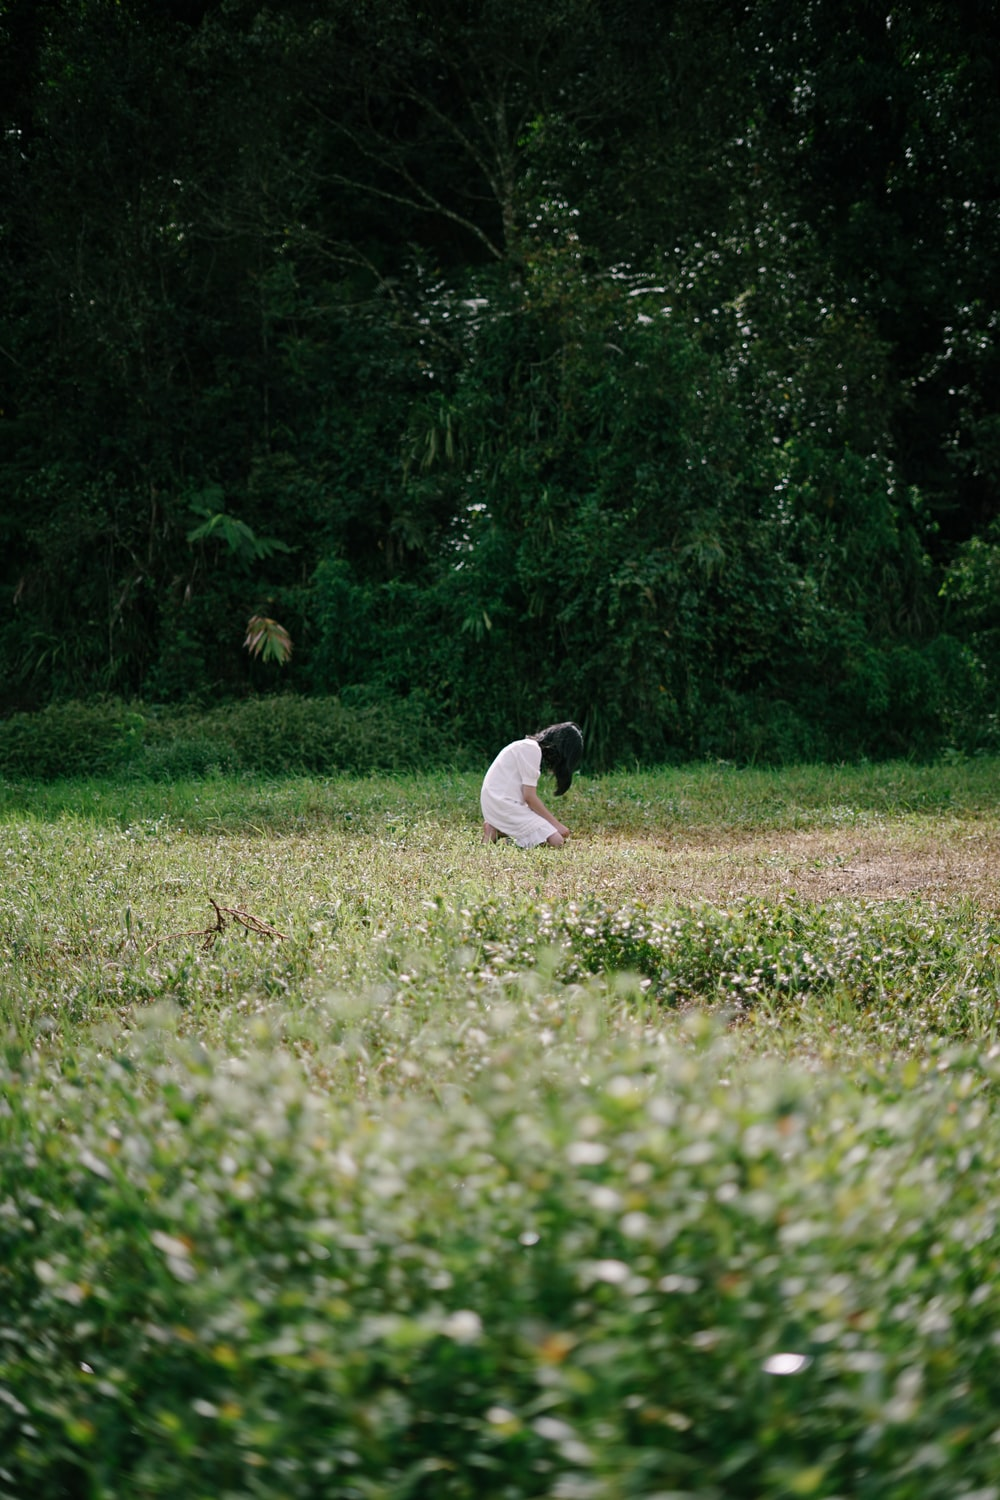 man in white t-shirt sitting on green grass field during daytime